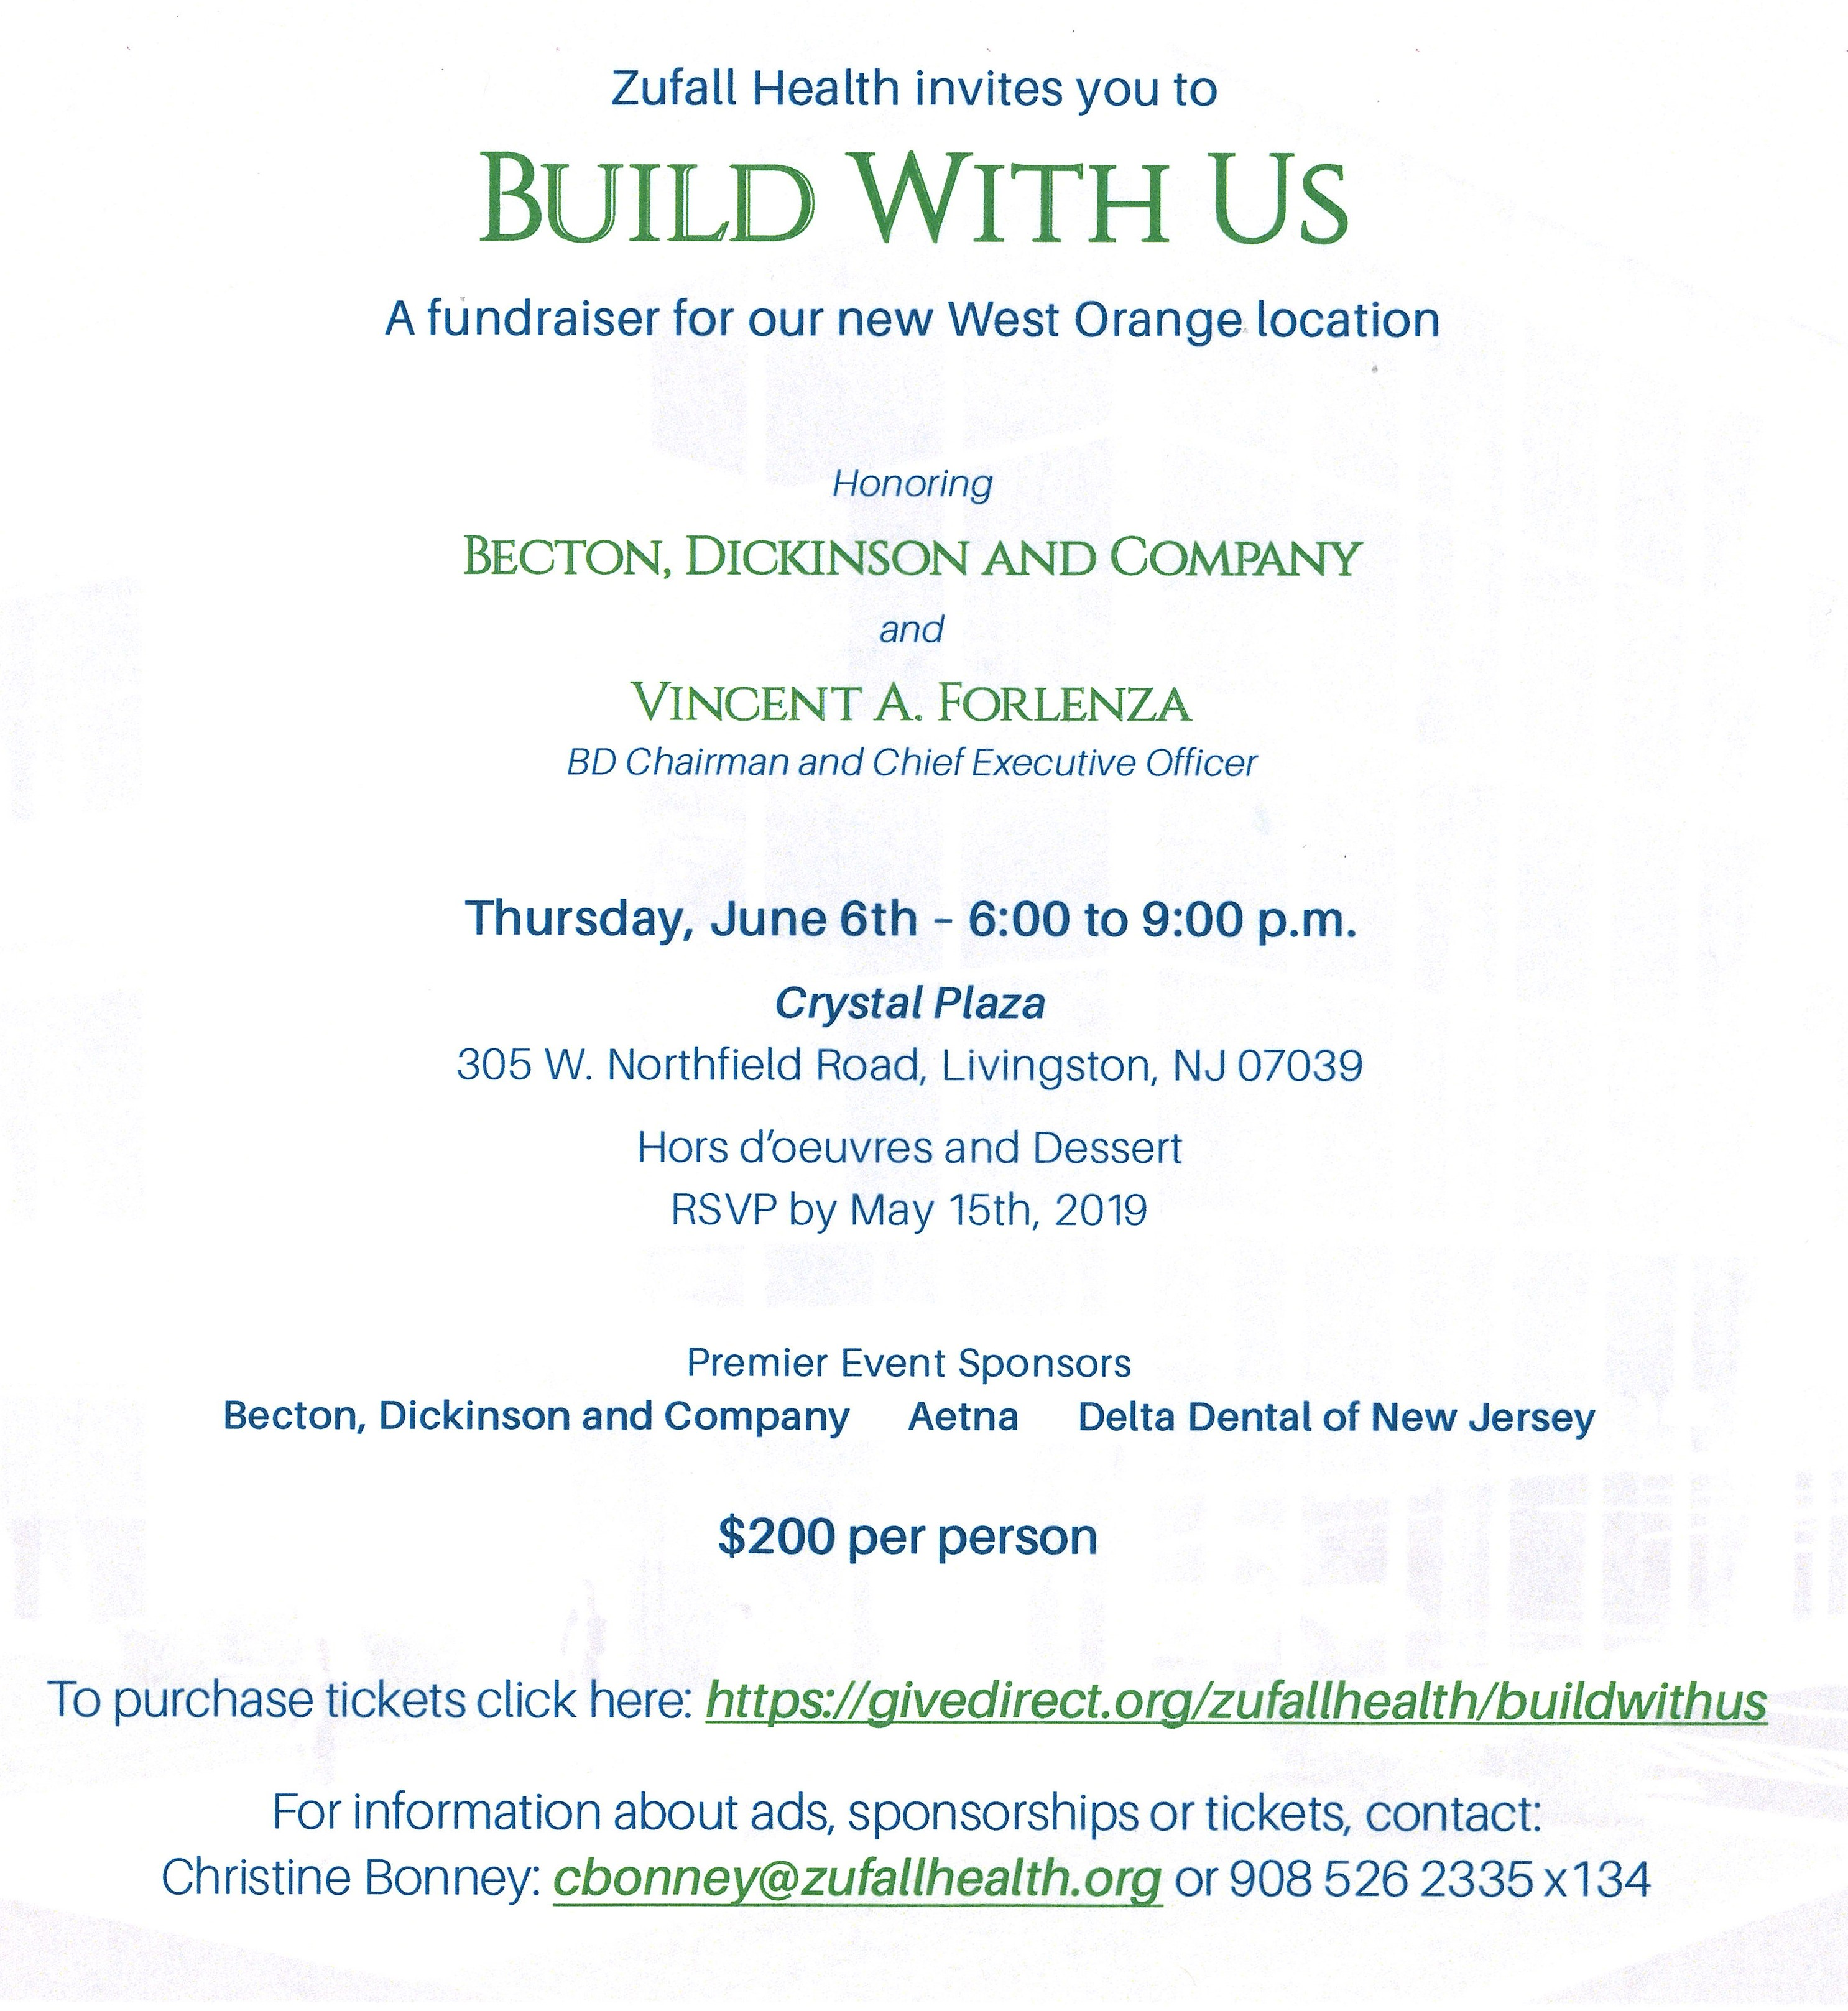 Invite for Build With Us campaign fundraising event on June 6